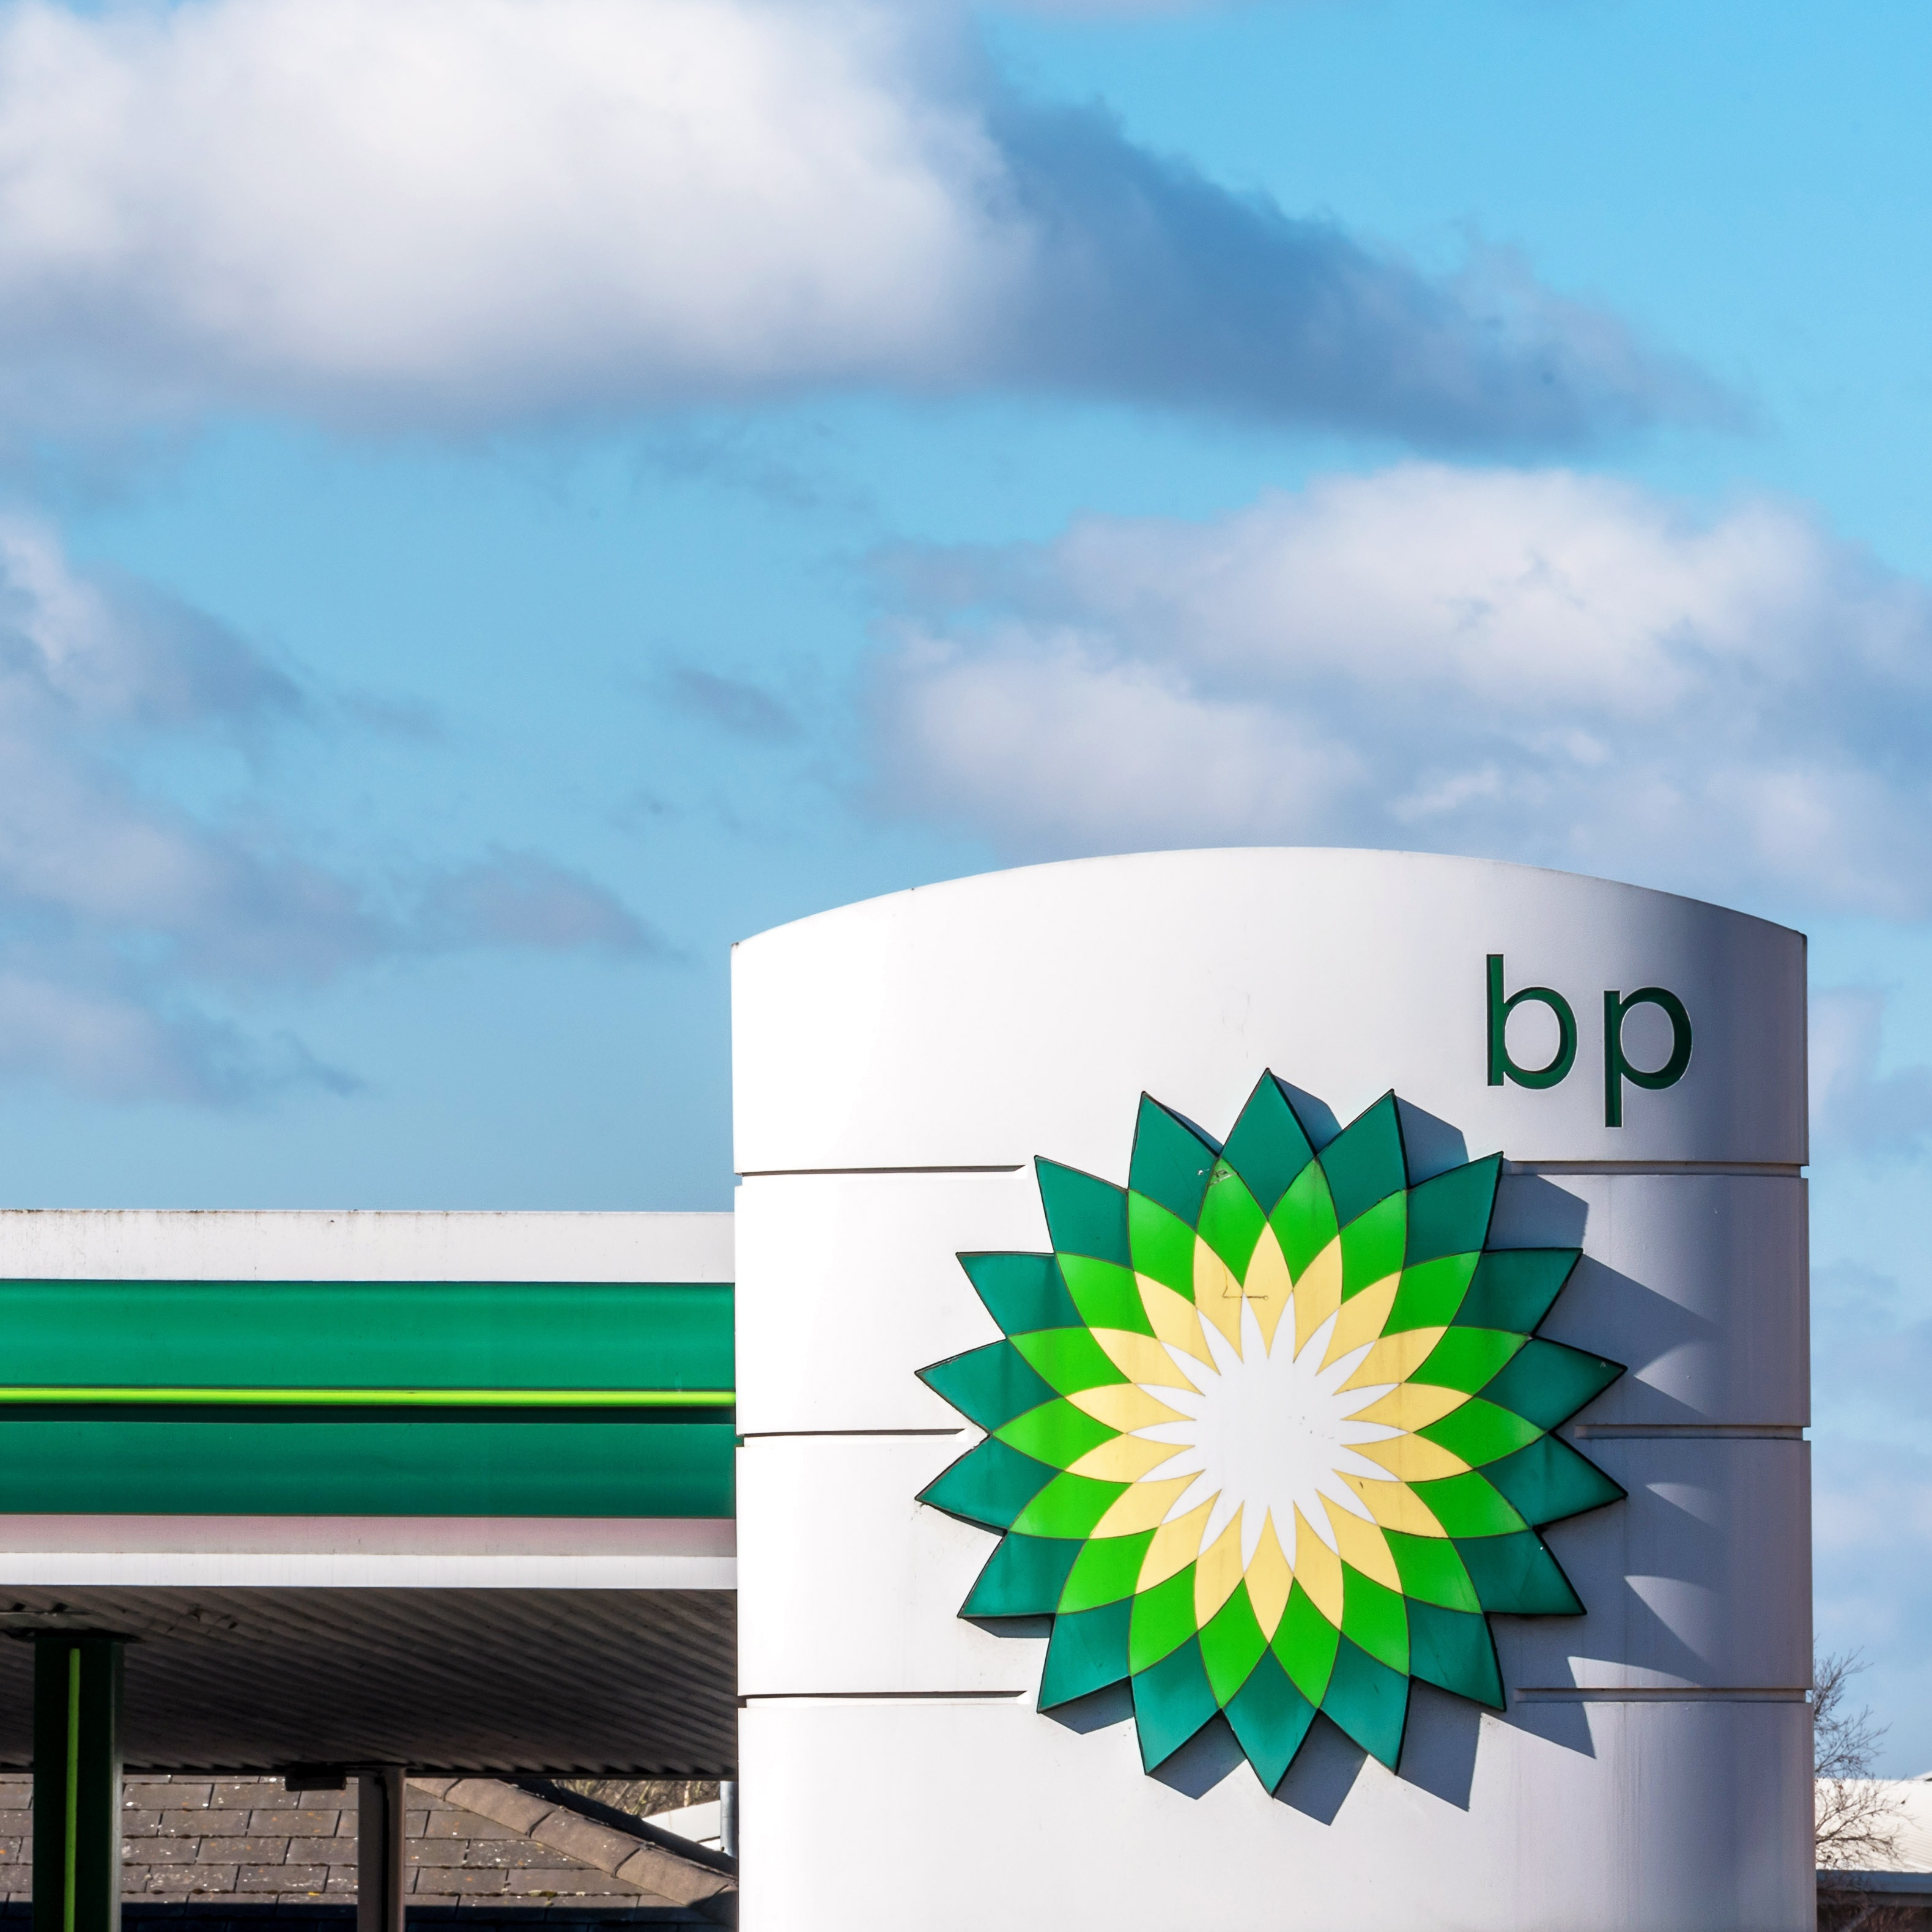 Hundreds of BP customers to have £2,000 prize 'win' honoured after competition gaffe – but you need to claim it